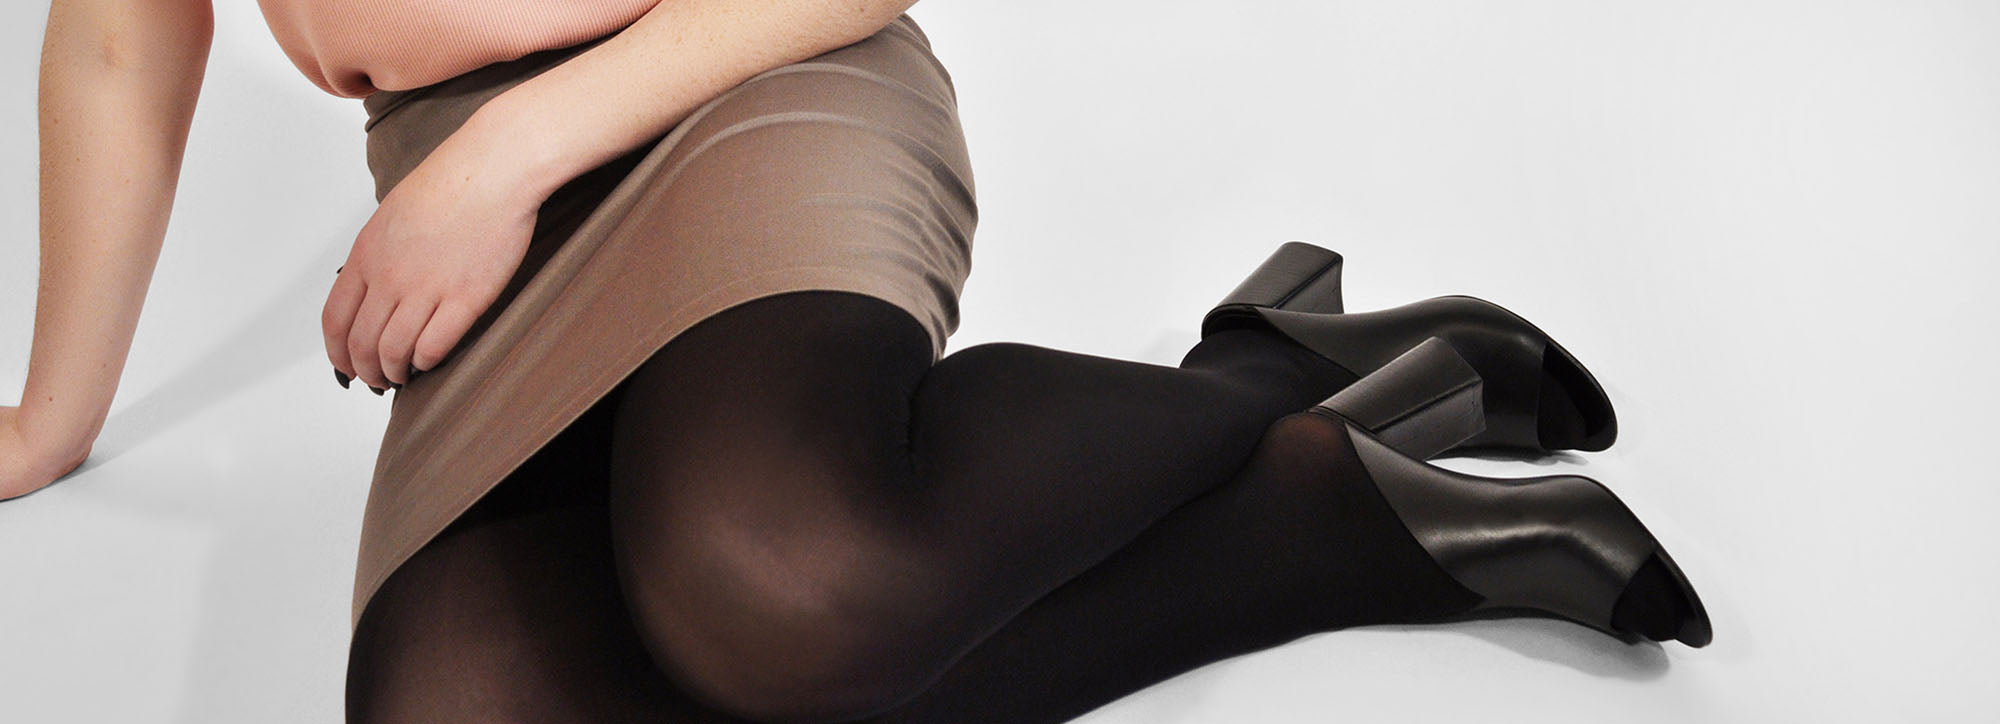 Unsnaggable, Eco-friendly Tights from Swedish Stockings on uk.buymeonce.com